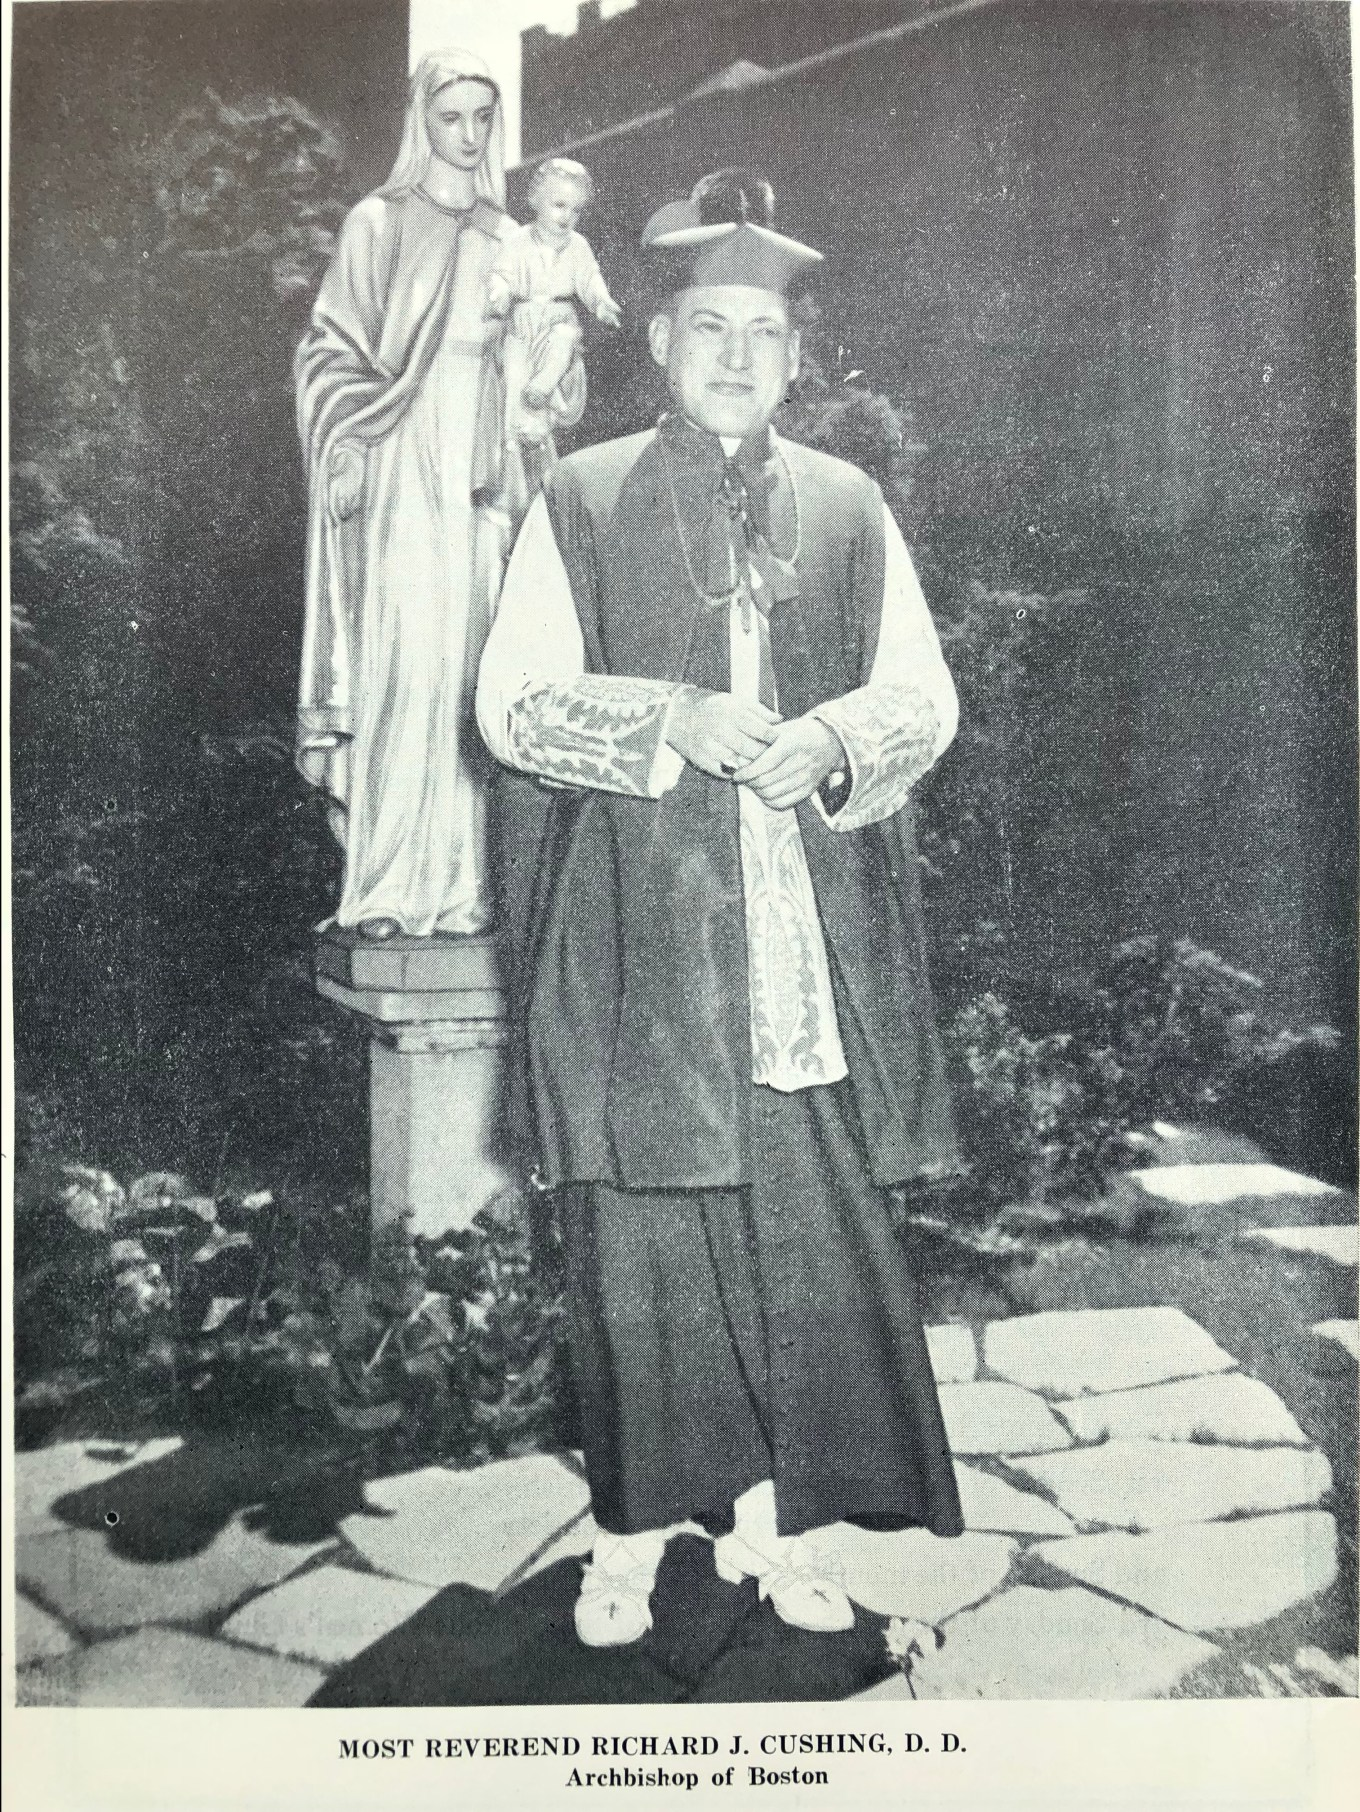 Boston Archbishop Richard J. Cushing